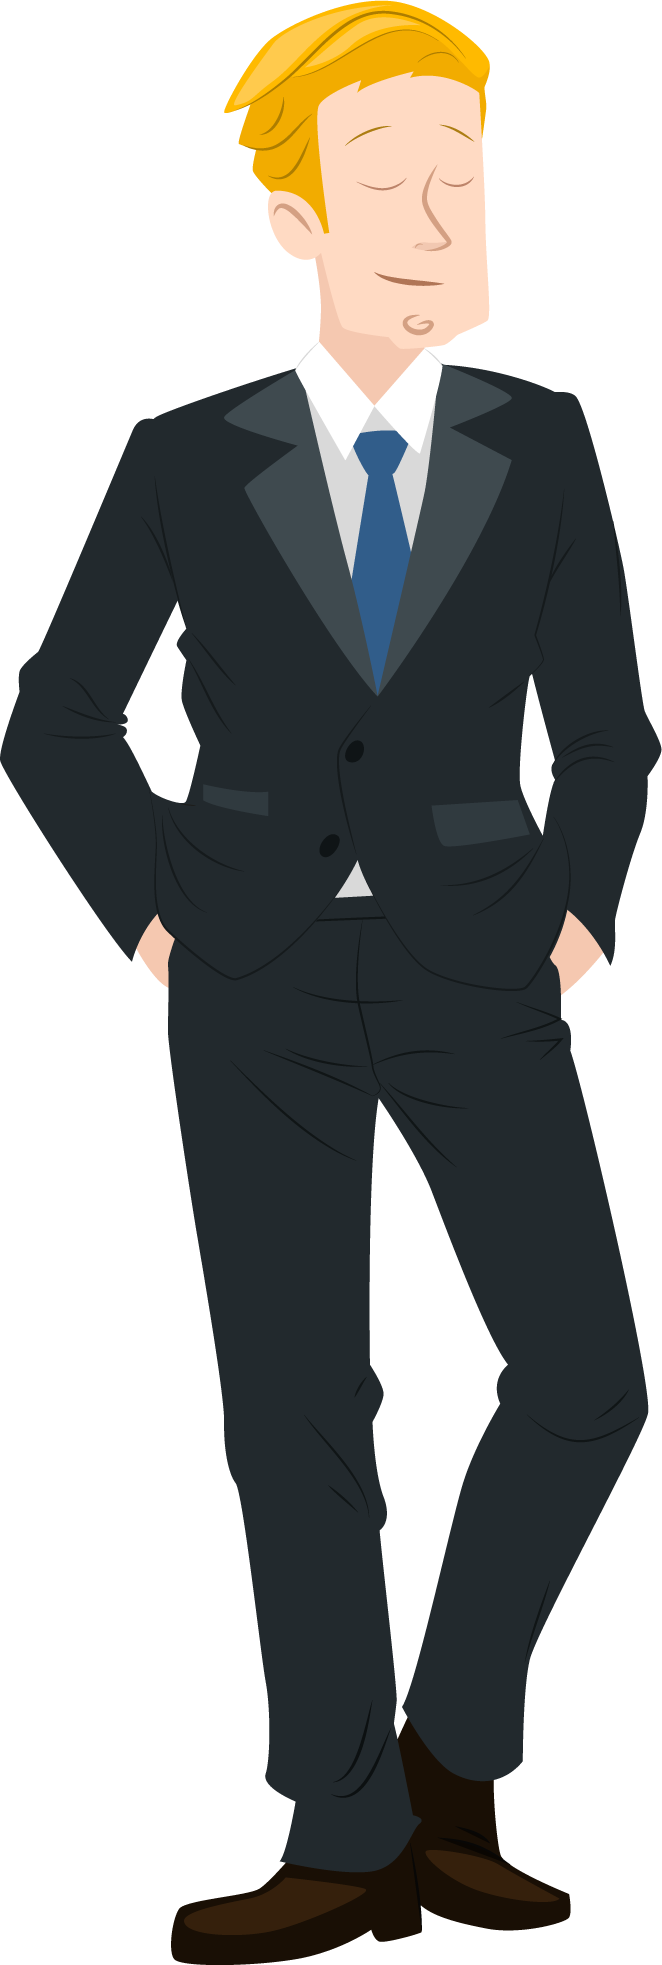 Men suits clipart freeuse stock Men in suits clipart clipart images gallery for free download ... freeuse stock